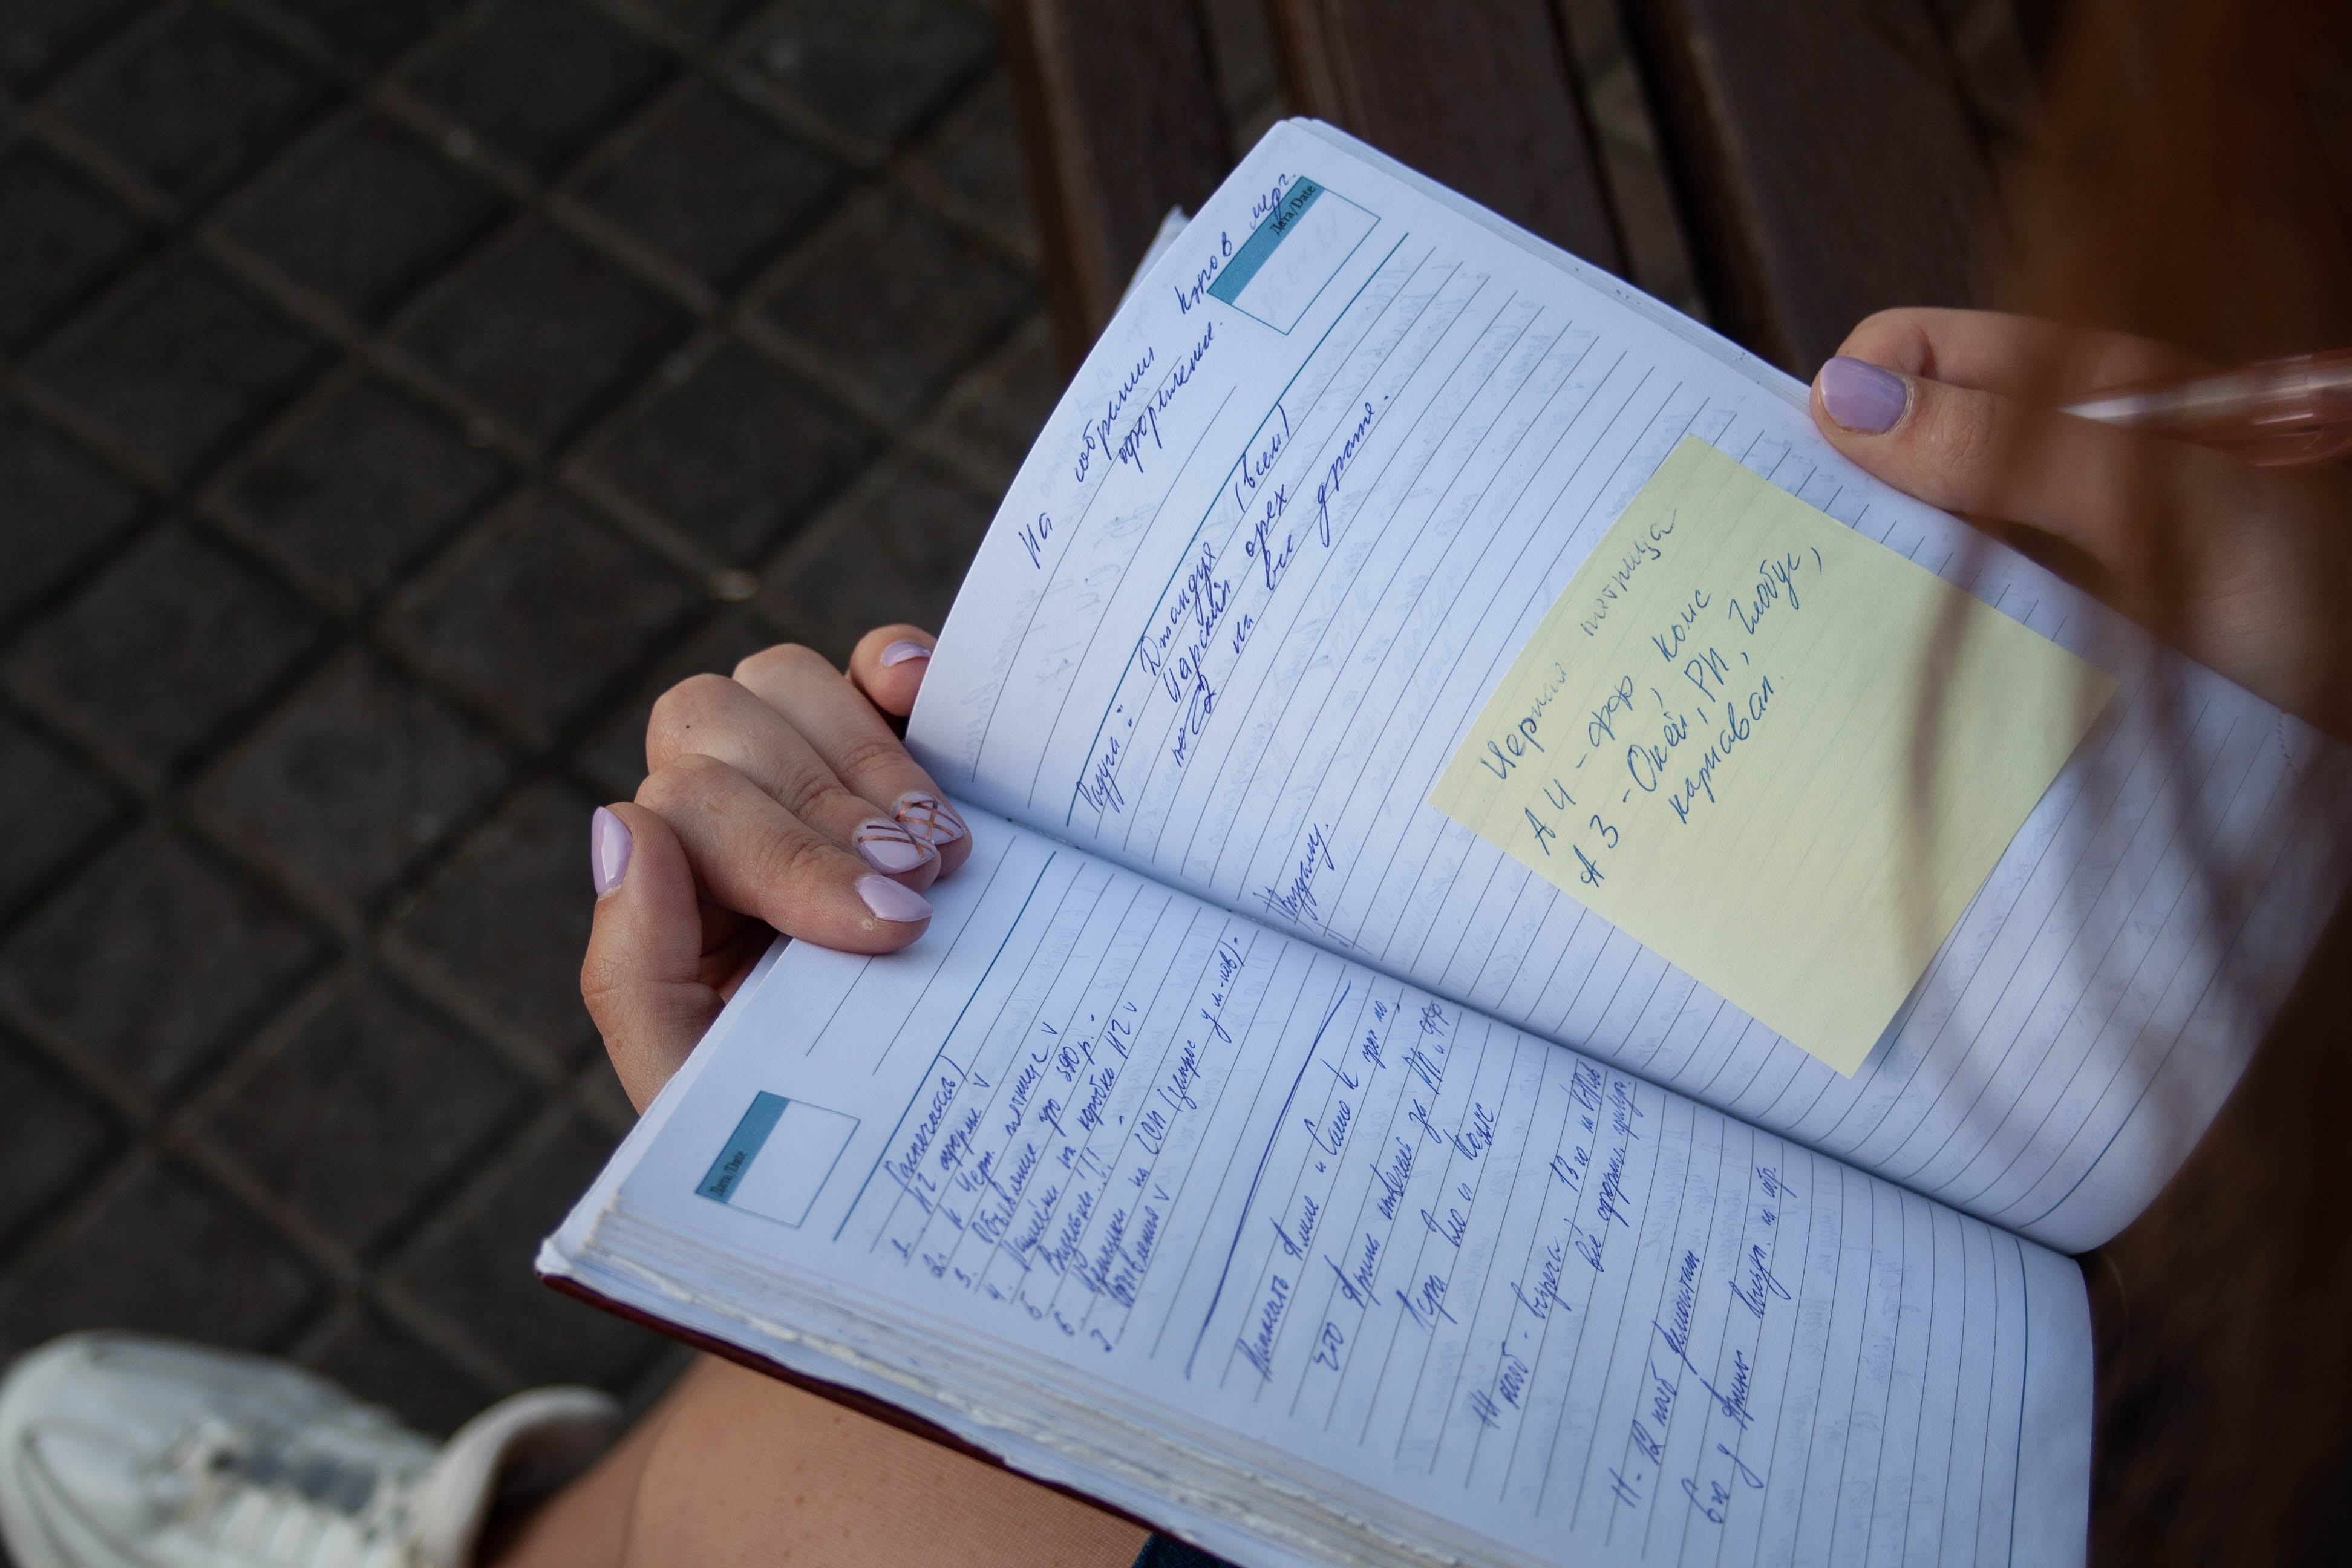 Person Holding Ruled Ntoebook With Yellow Sticky Note